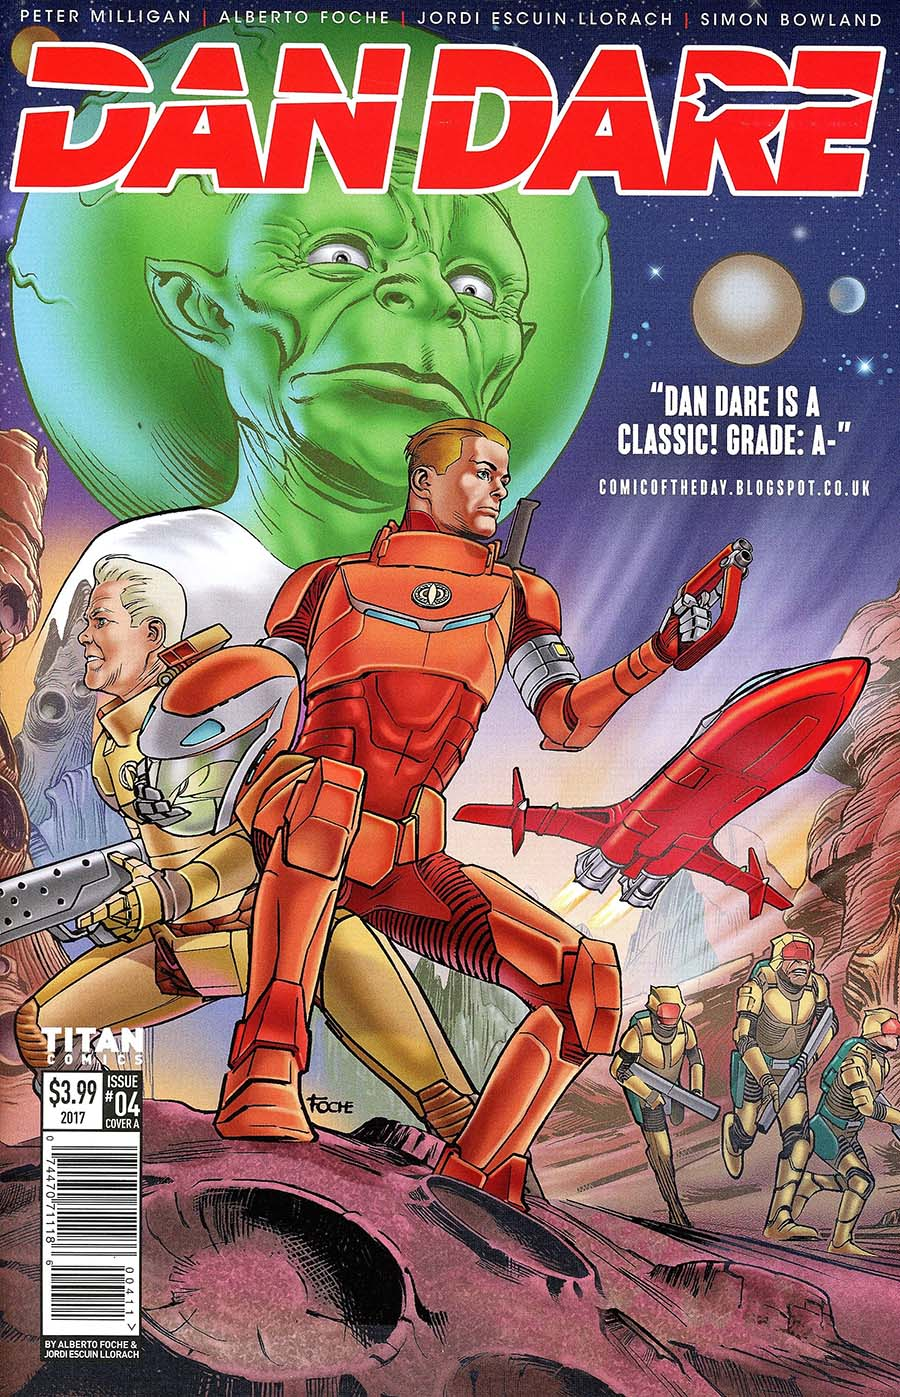 Dan Dare Vol 2 #4 Cover A Regular Alberto Fouche Cover